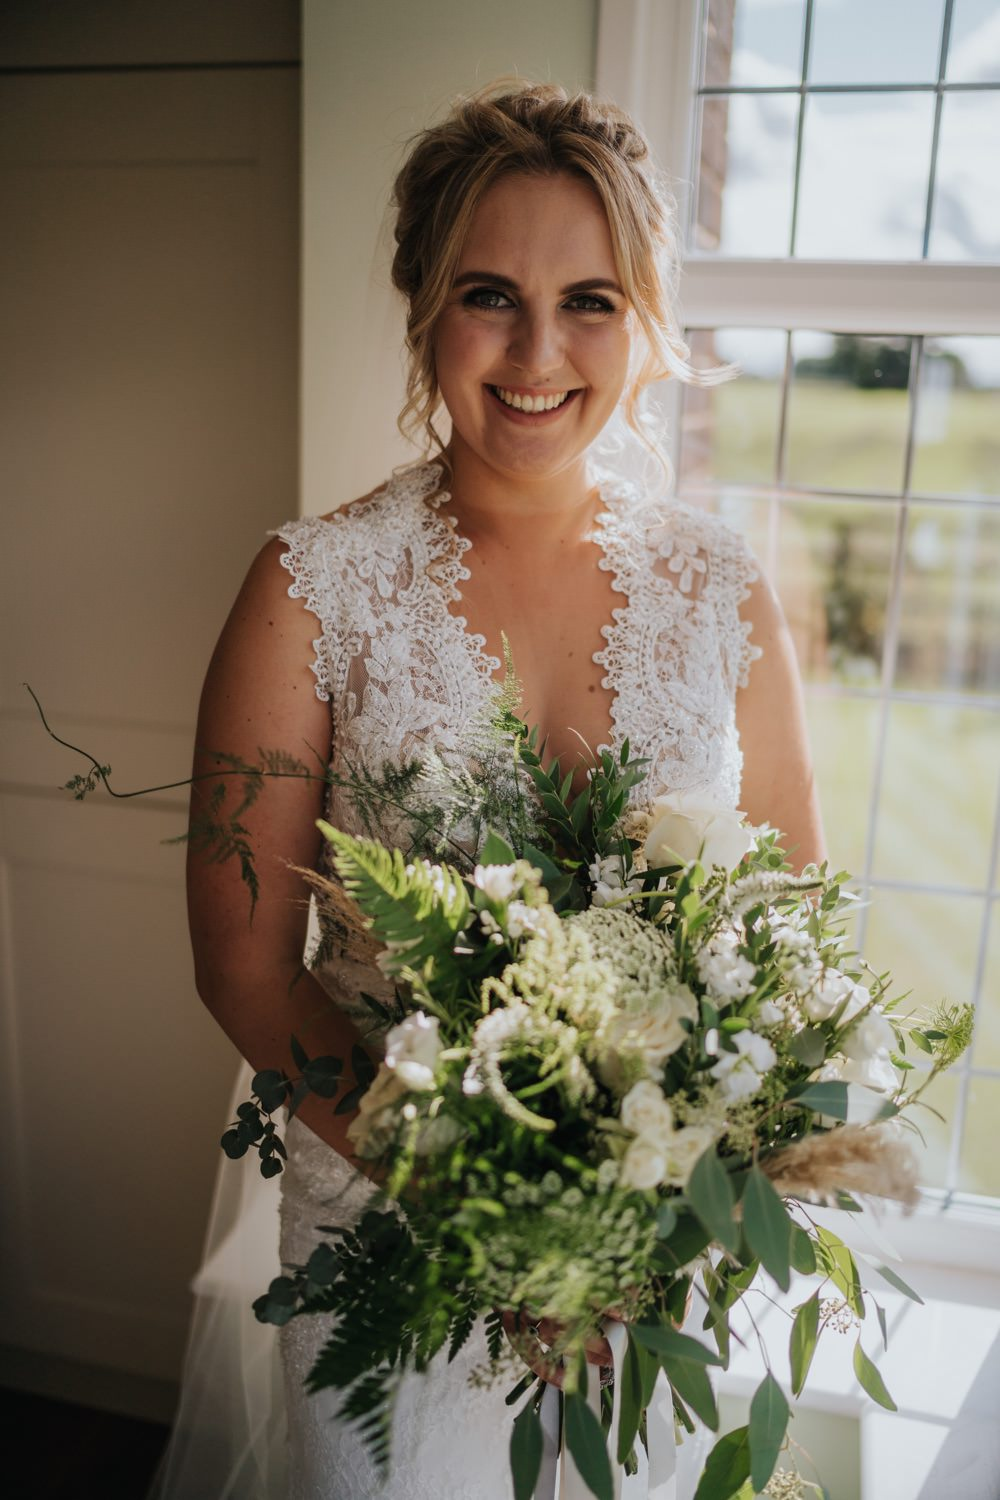 Bride Bridal Dress Gown Lace The Barns East Yorkshire Wedding Bloom Weddings